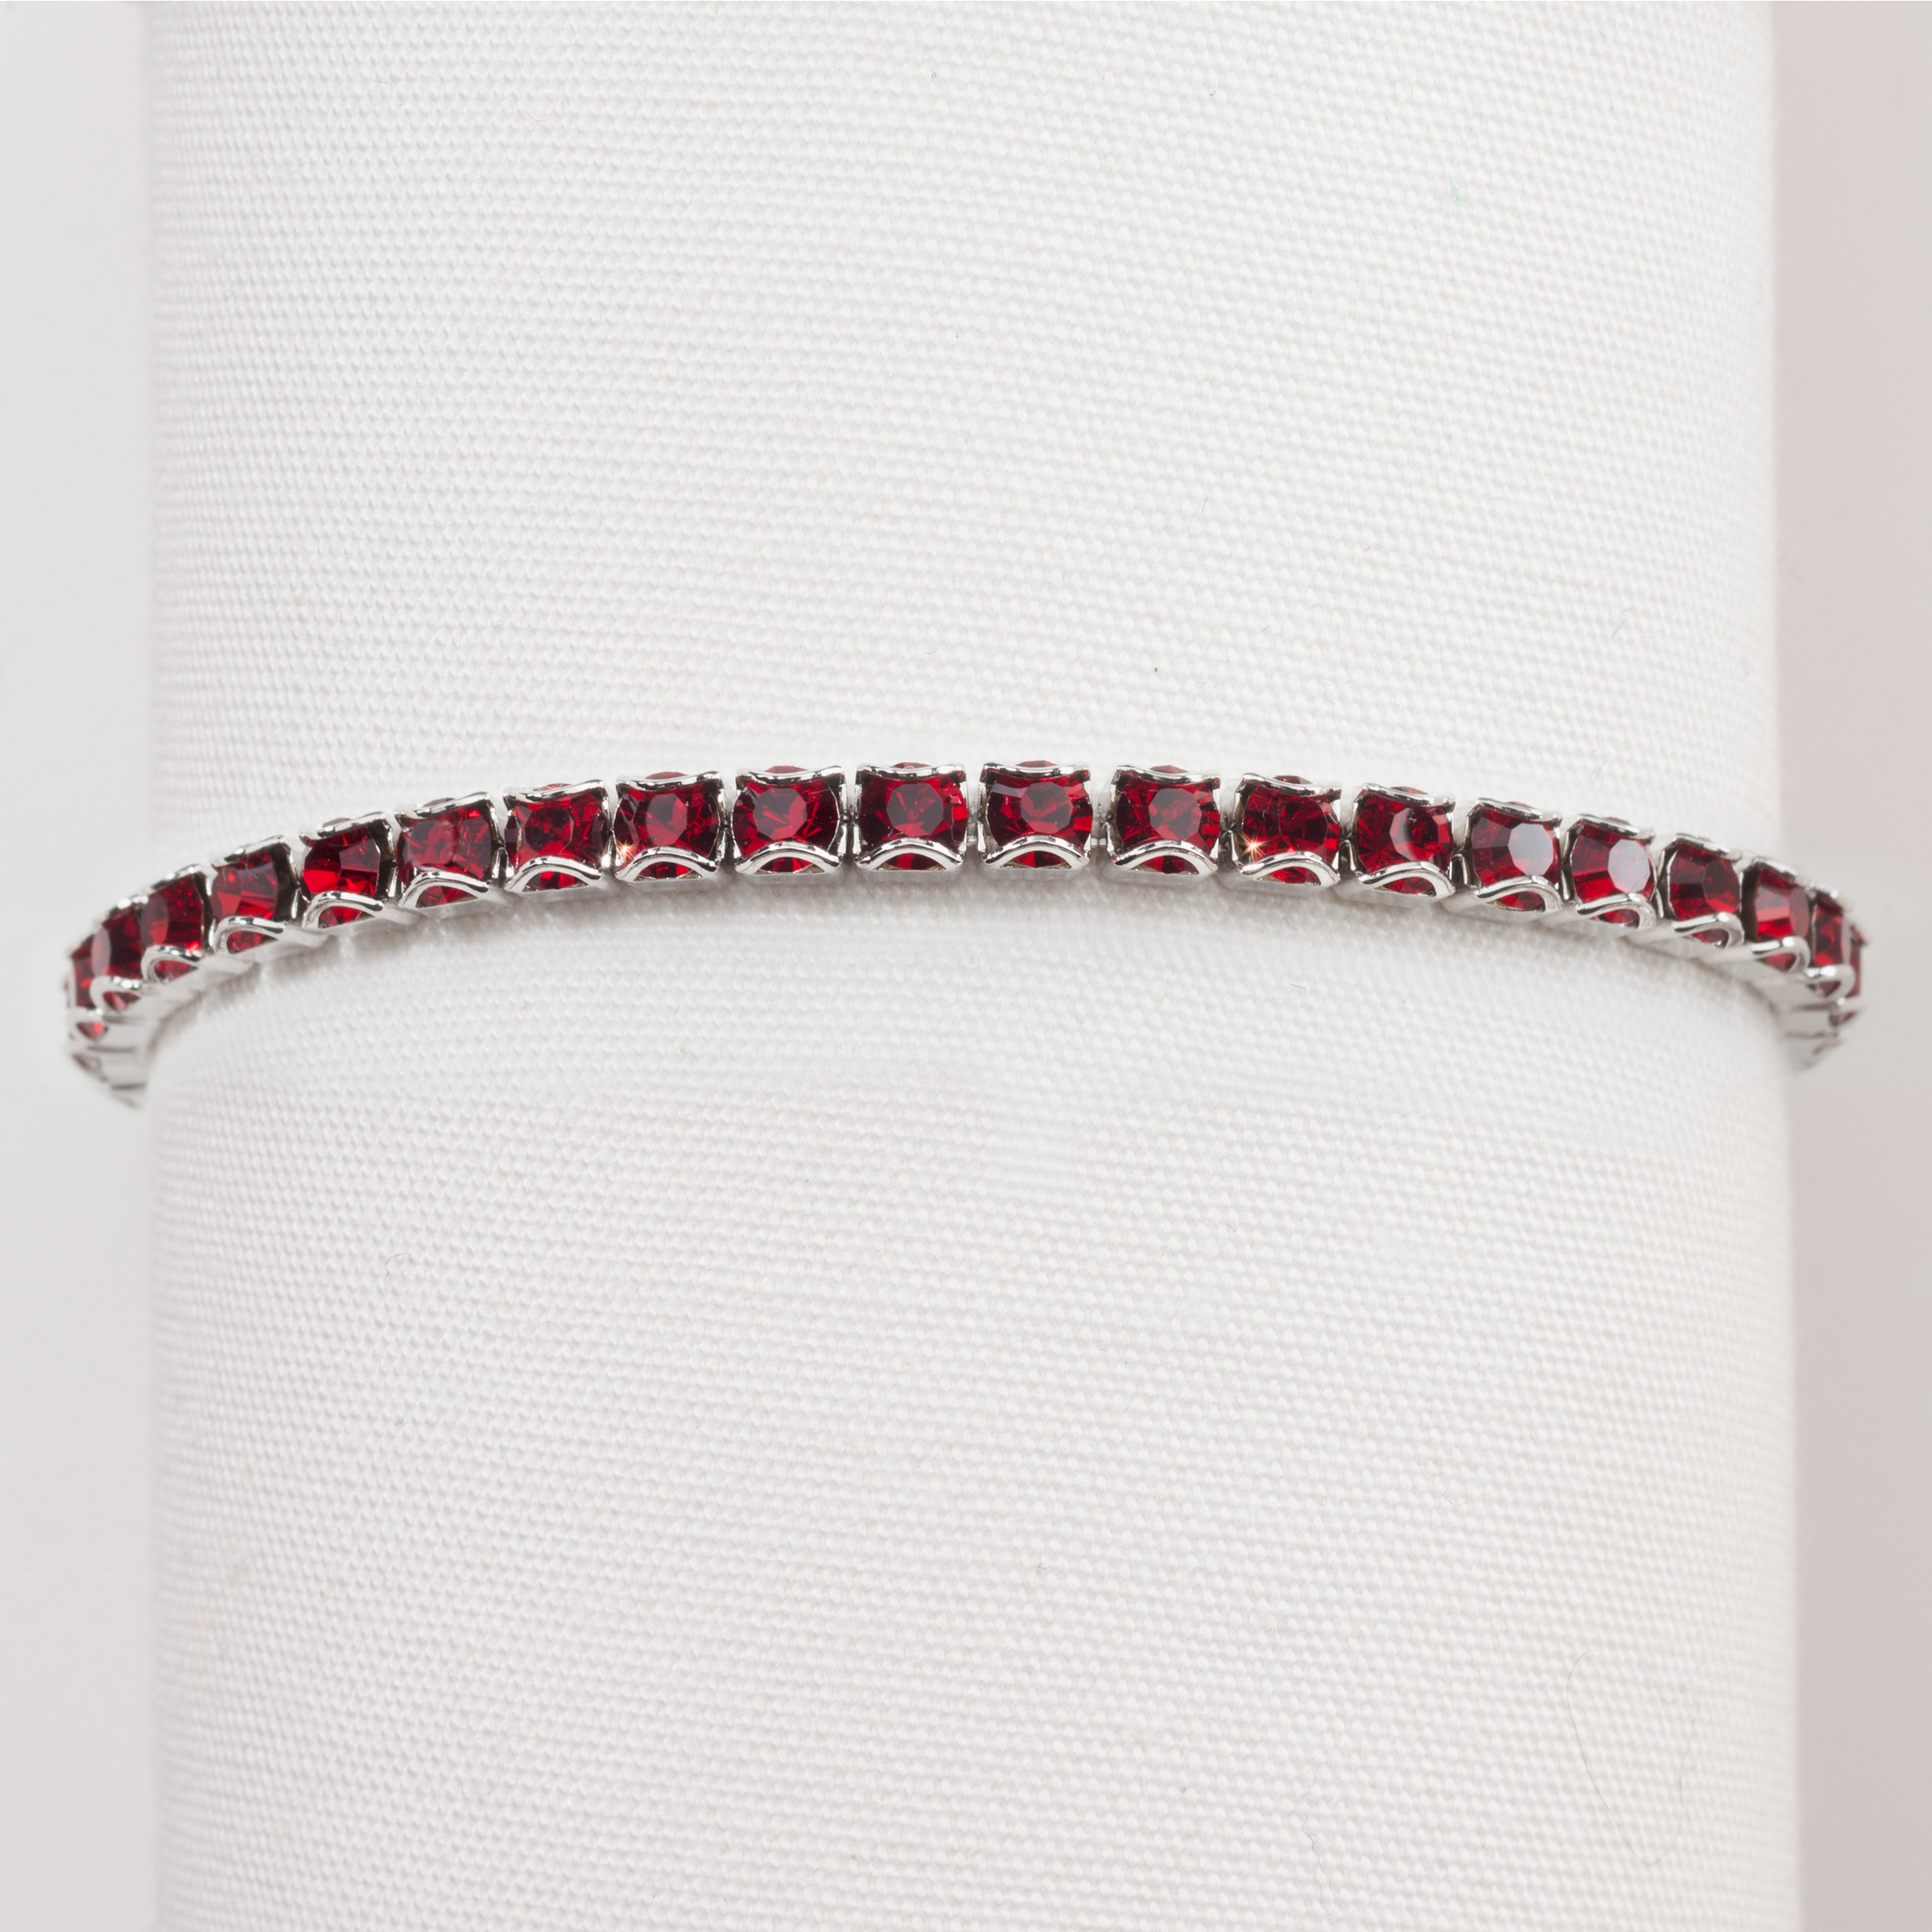 birthstone jewellery january bracelet auree garnet bali jan